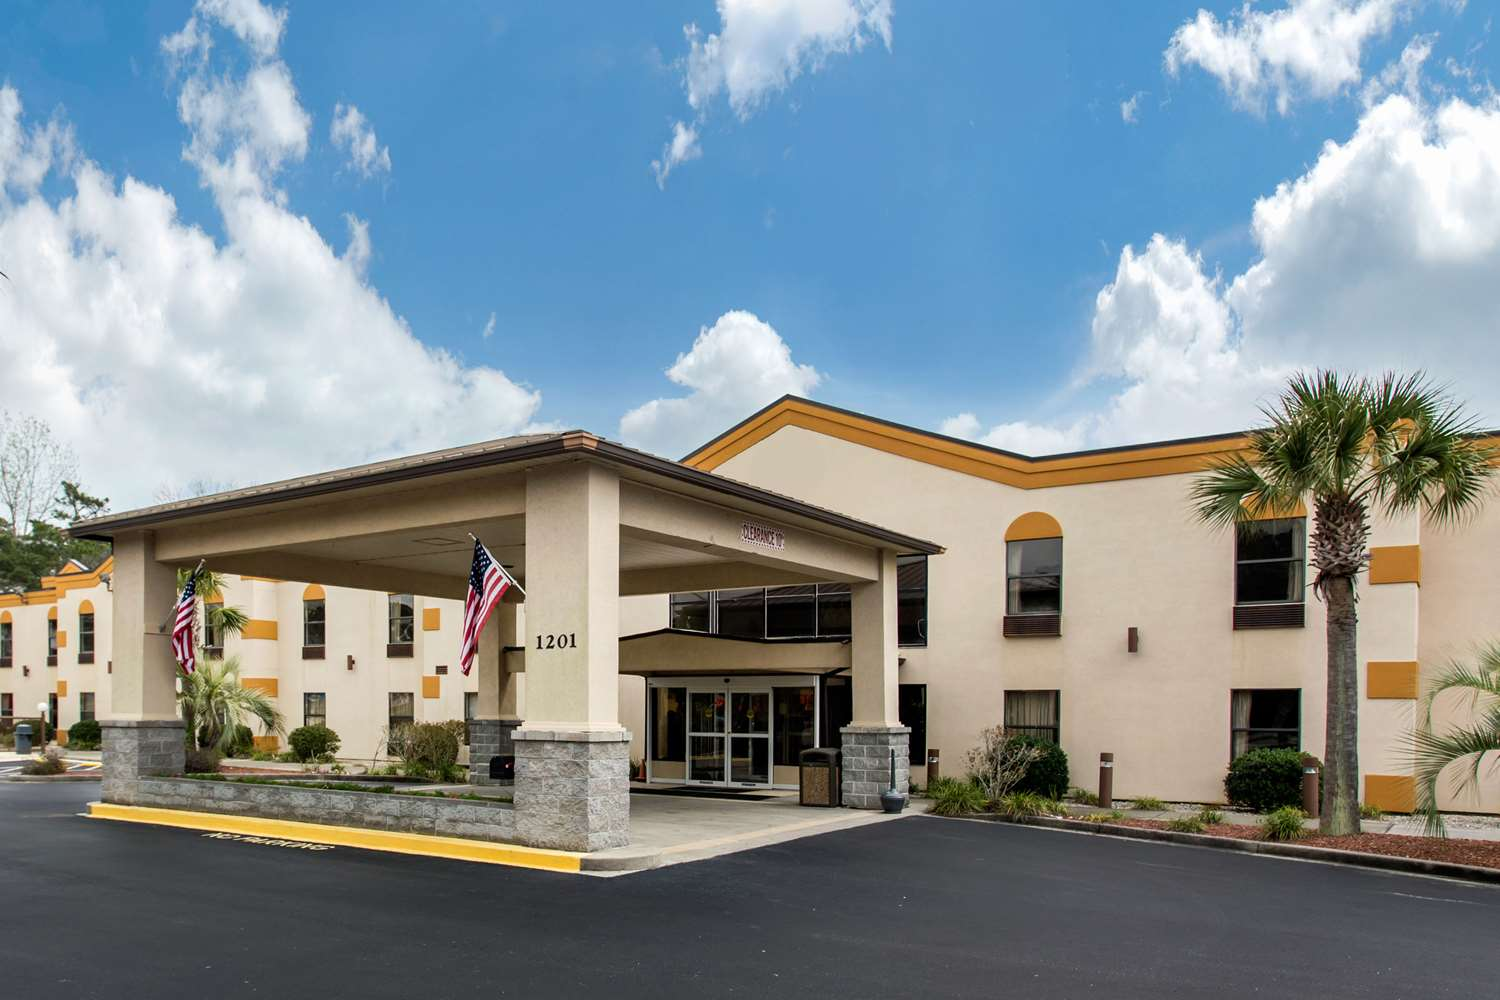 Garden City Beach Hotels Find hotels in Garden City Beach SC with